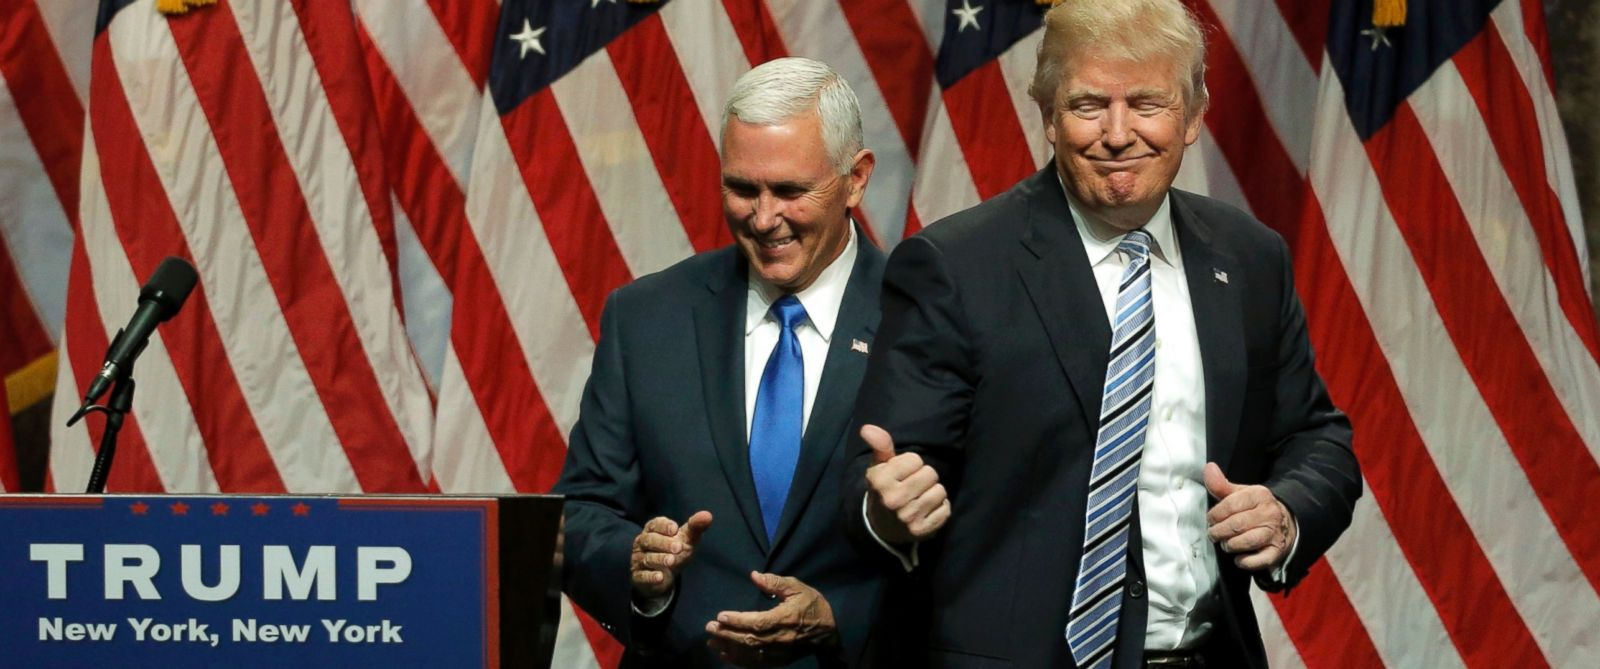 Image result for donald trump and mike pence new york